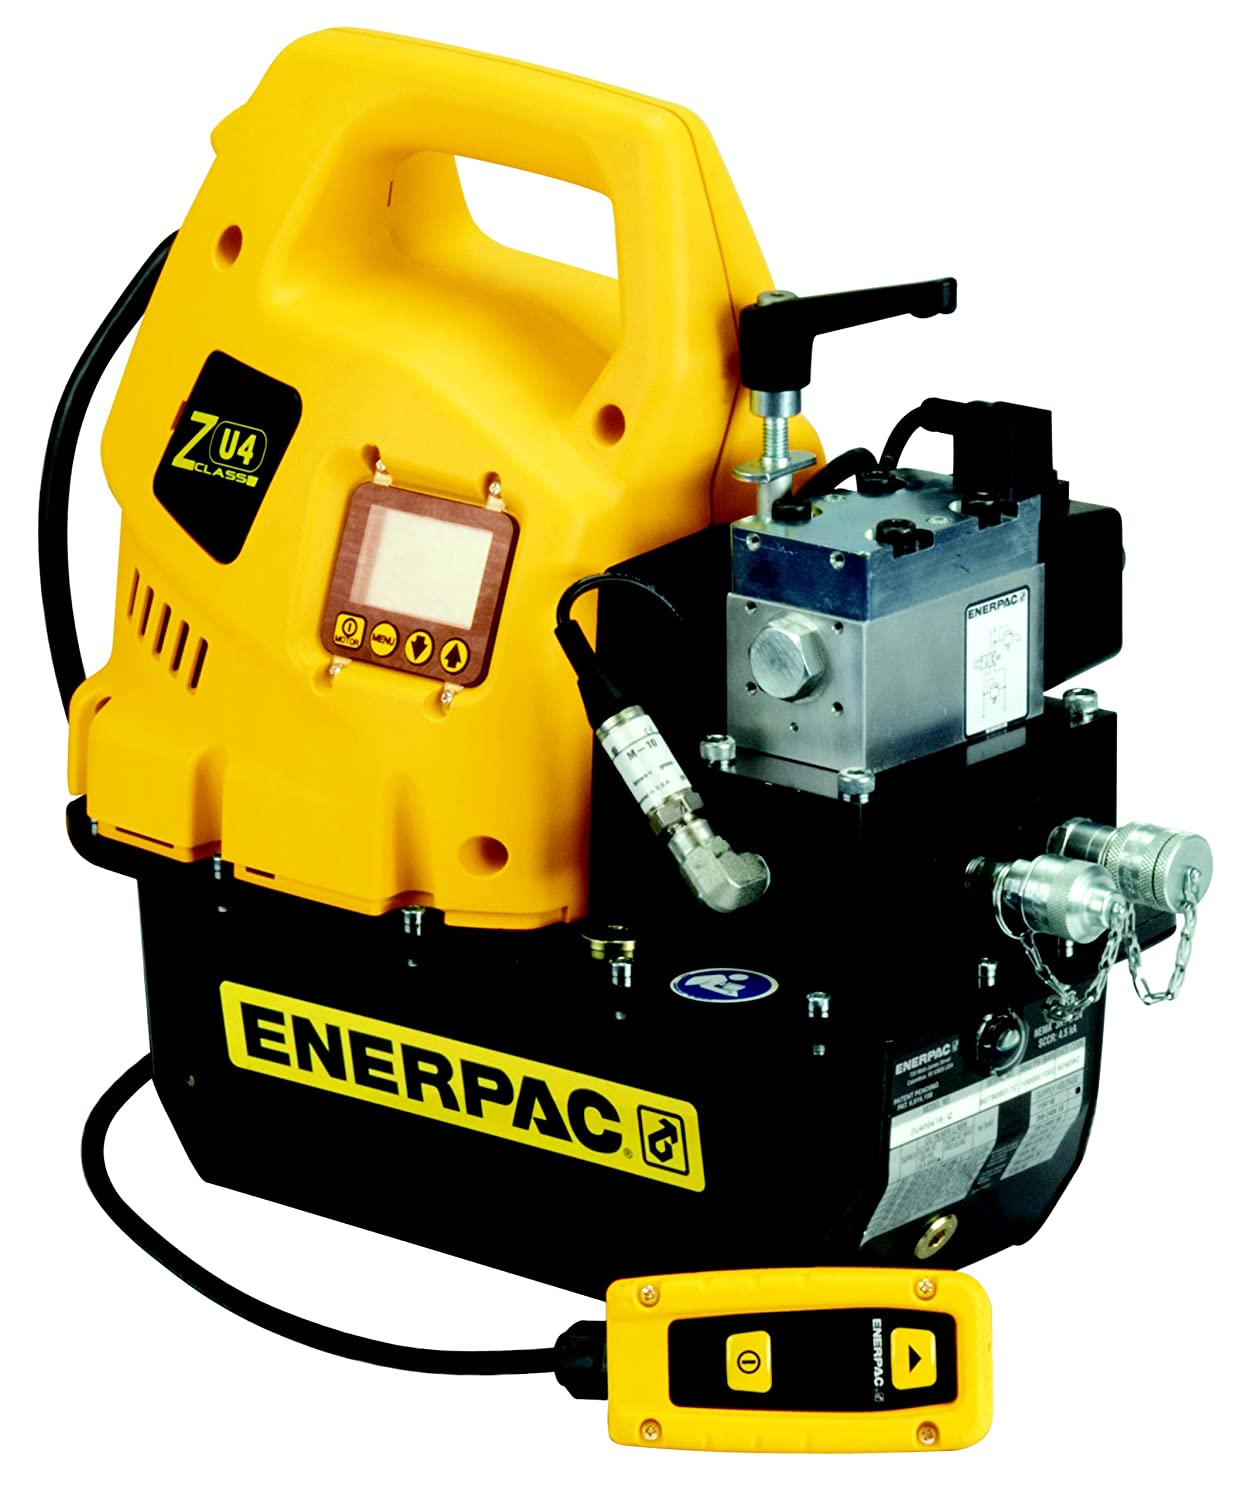 Enerpac Many popular brands ZU4204TB-EH Classic Torque Wrench Valve Pump VE42E with Over item handling ☆